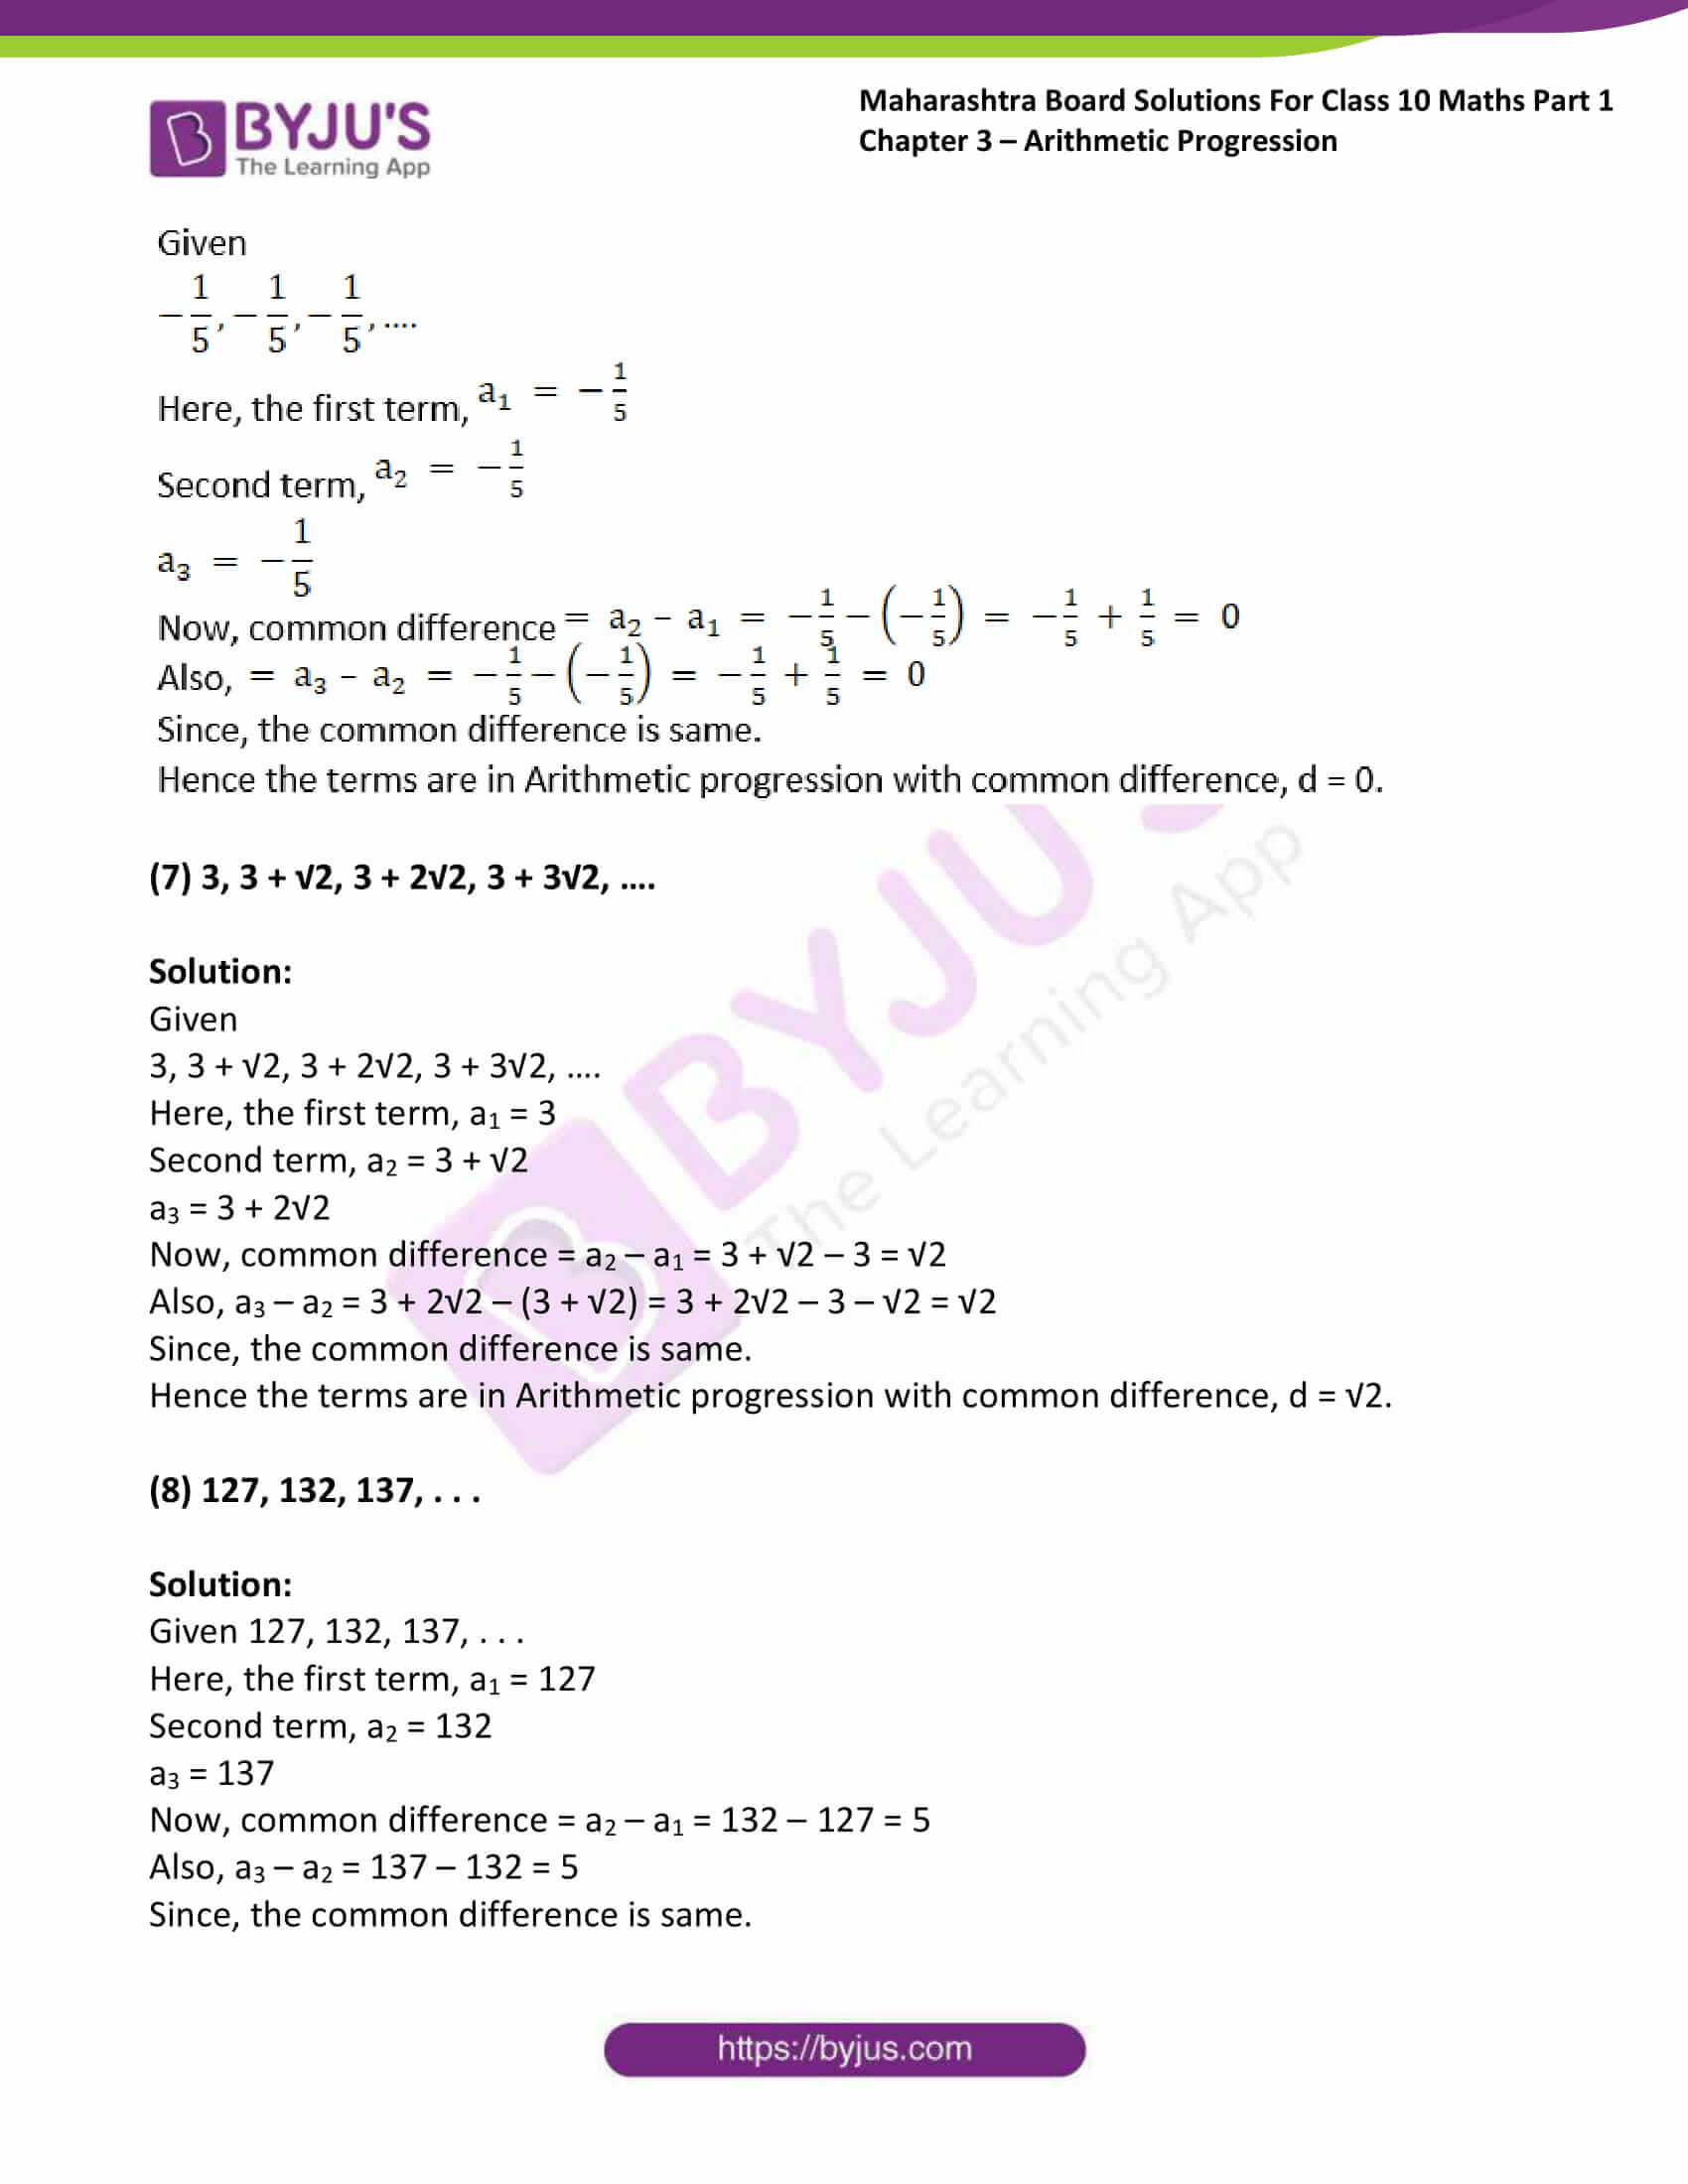 msbshse solutions class 10 maths part 1 chapter 3 03